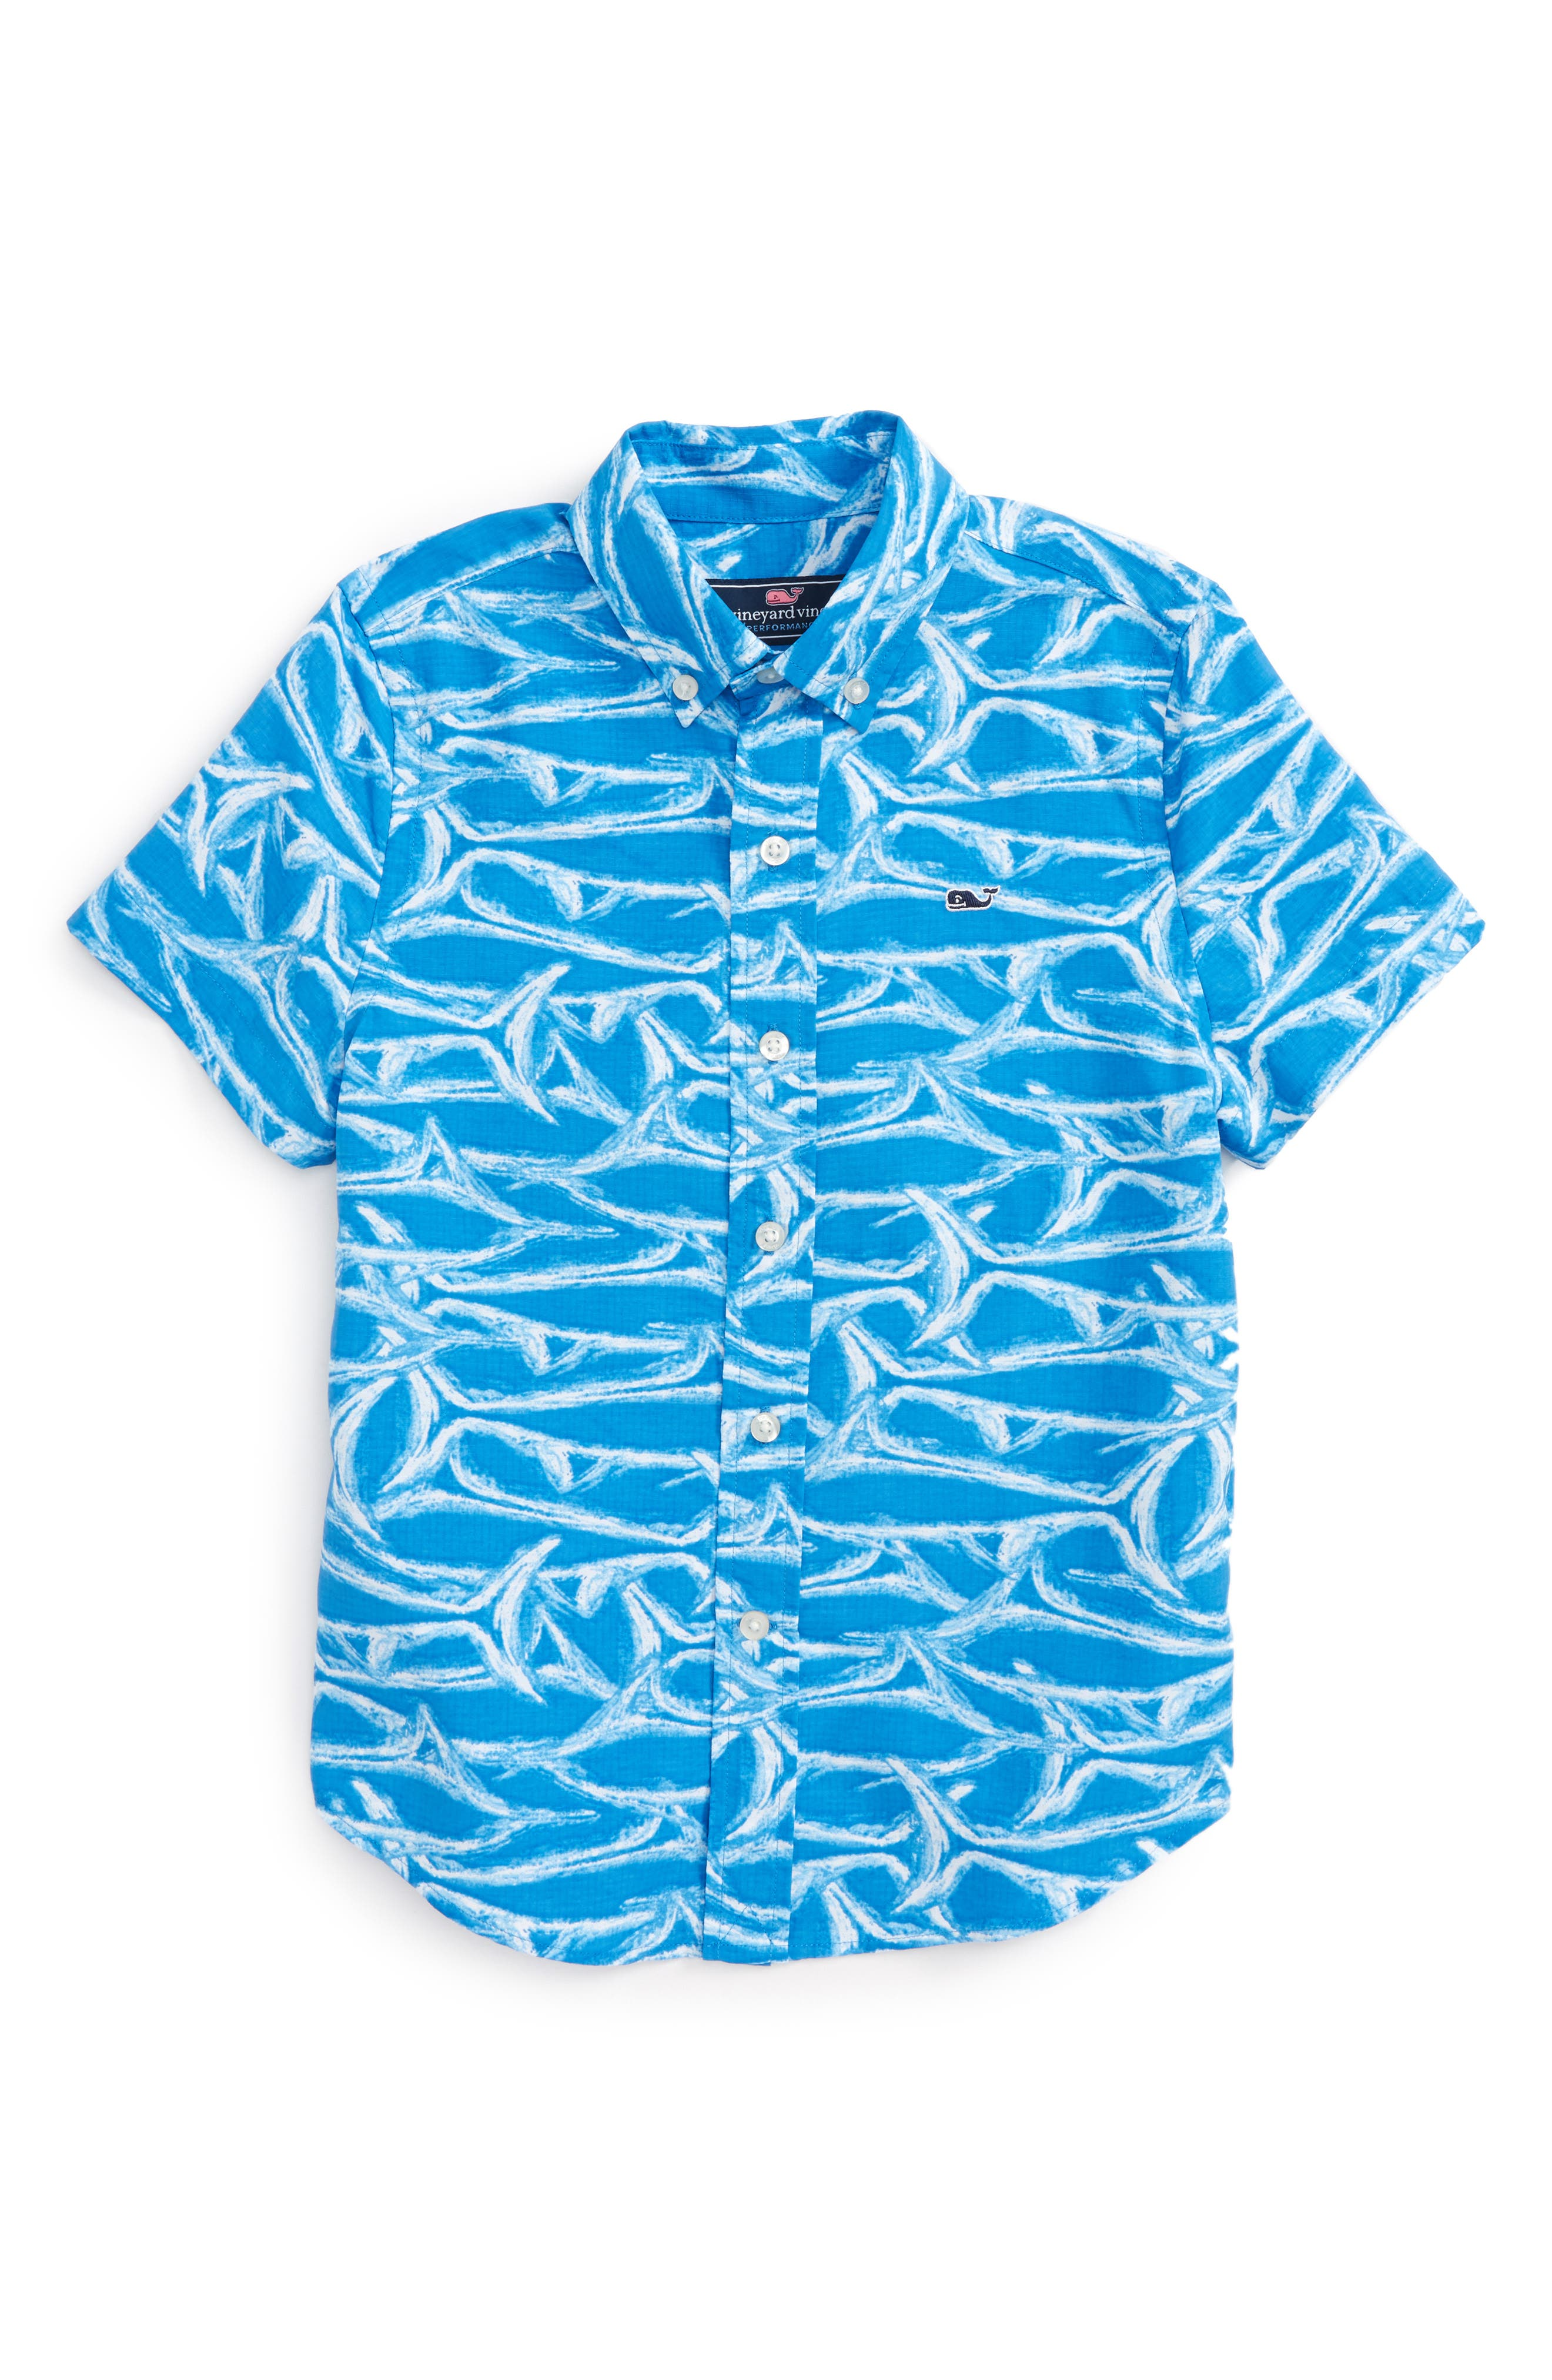 vineyard vines Brushed Marlin Whale Shirt (Toddler Boys, Little Boys & Big Boys)